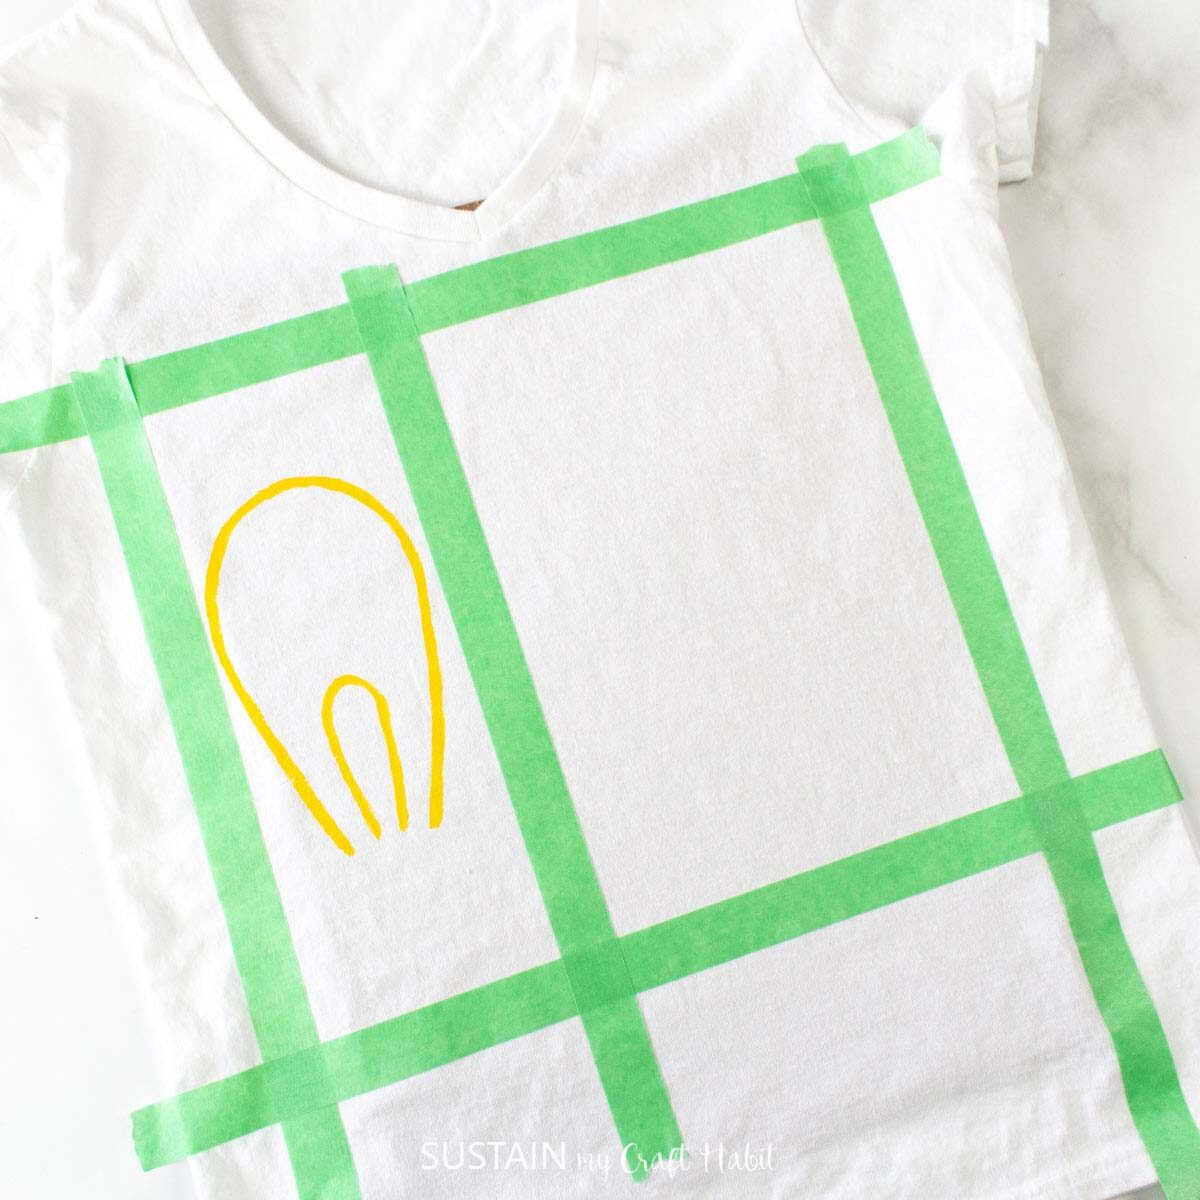 Painting a smaller light bulb on the tshirt.